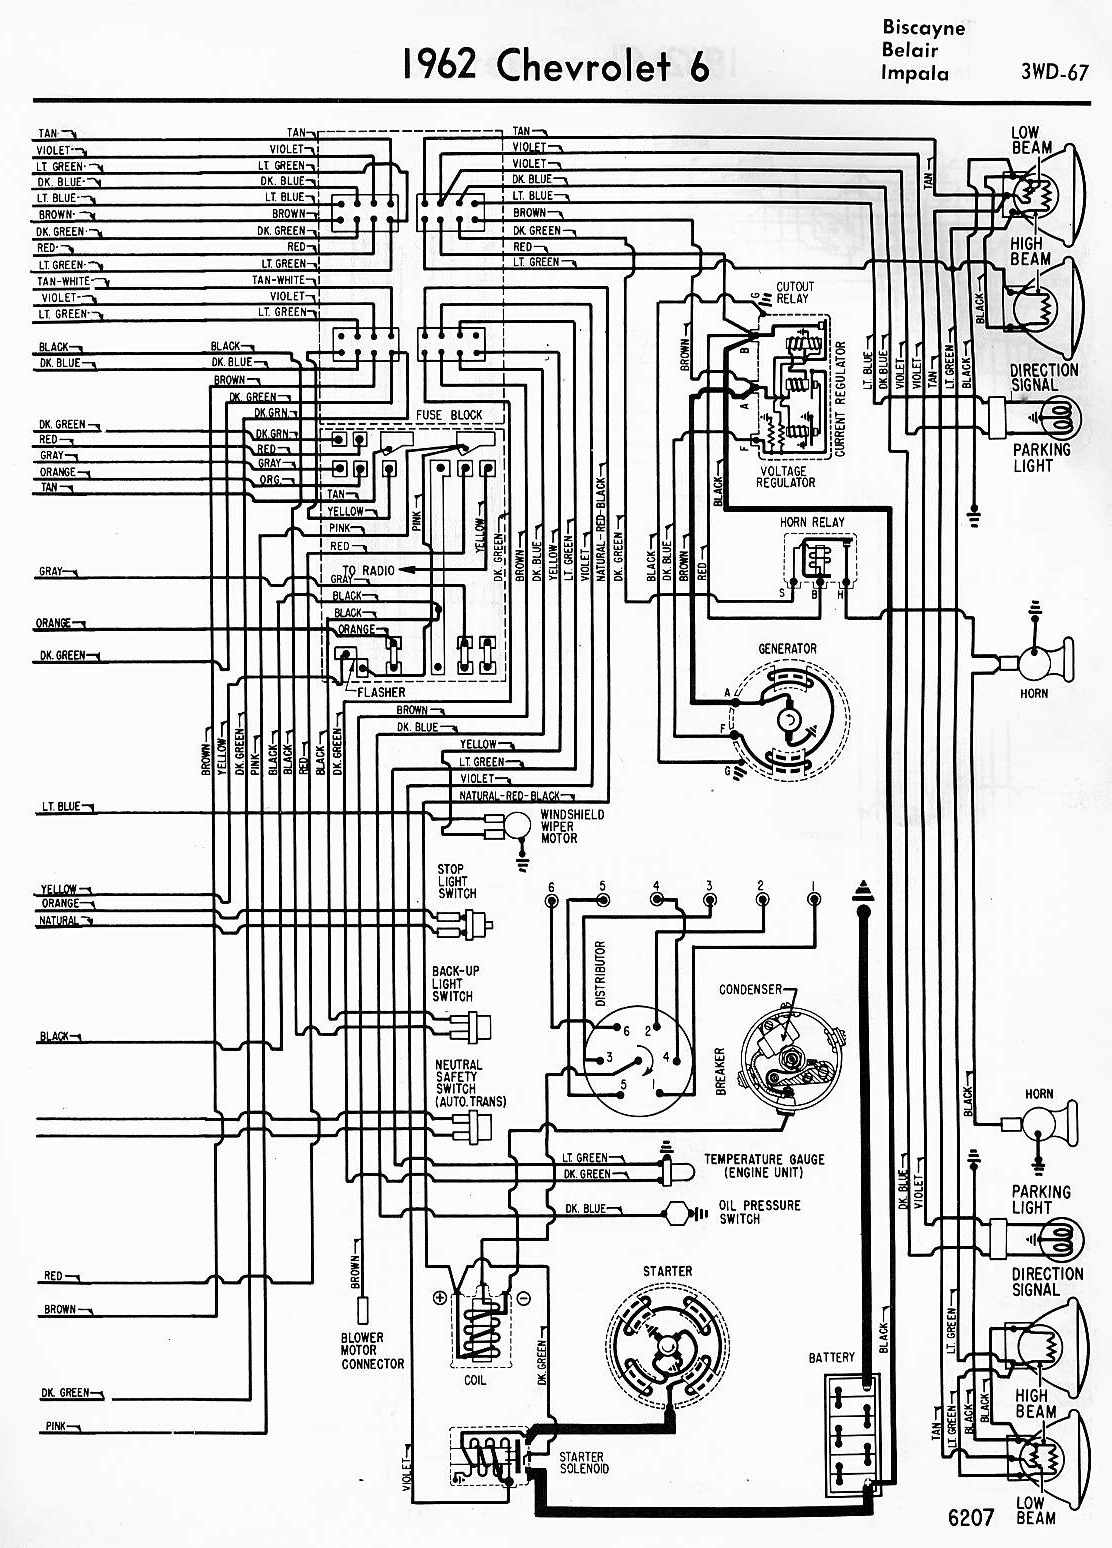 Electrical+Wiring+Diagram+Of+1964+Chevrolet+6 electrical wiring diagram of 1962 chevrolet 6 all about wiring 1967 Impala Wiring Diagram at webbmarketing.co